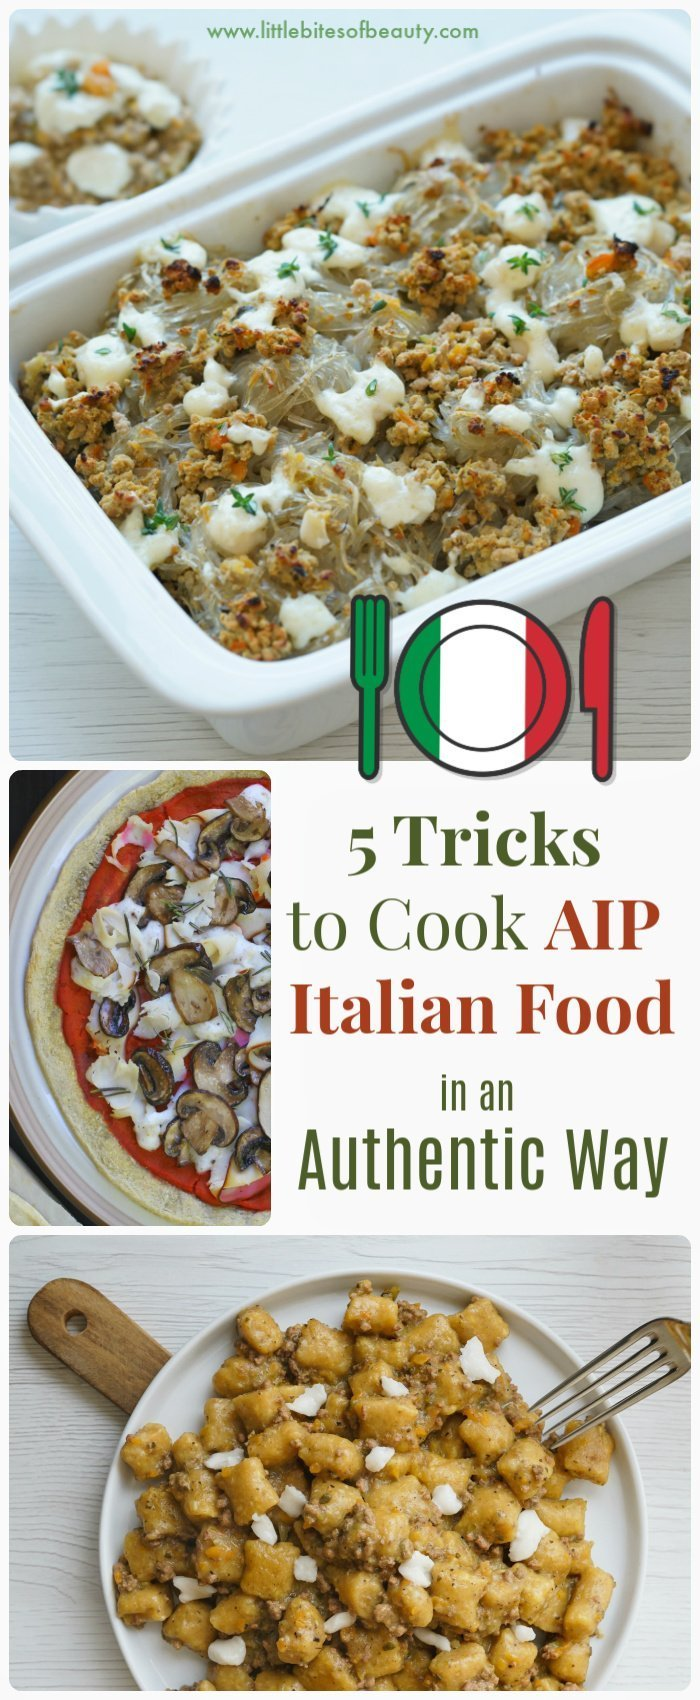 5 Tricks to Cook AIP Italian Food in an Authentic Way